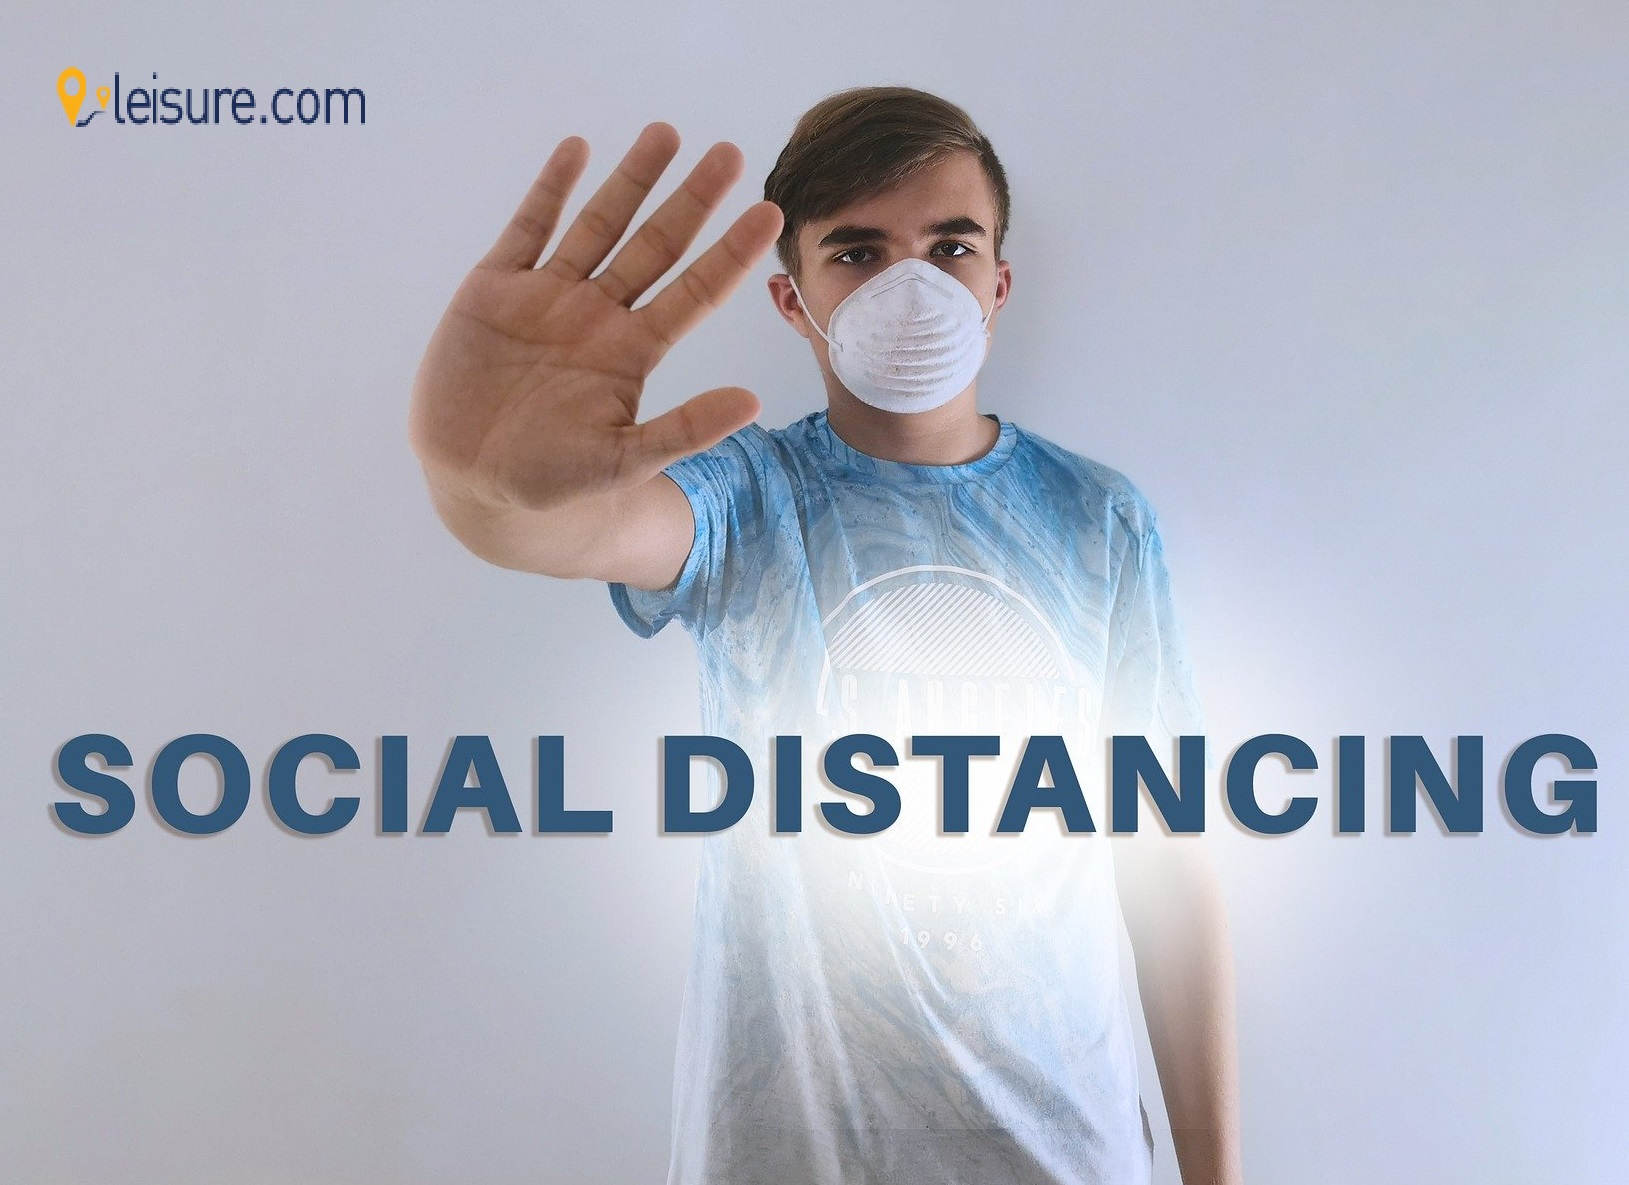 Countries That Are Not Taking Social Distancing Seriously